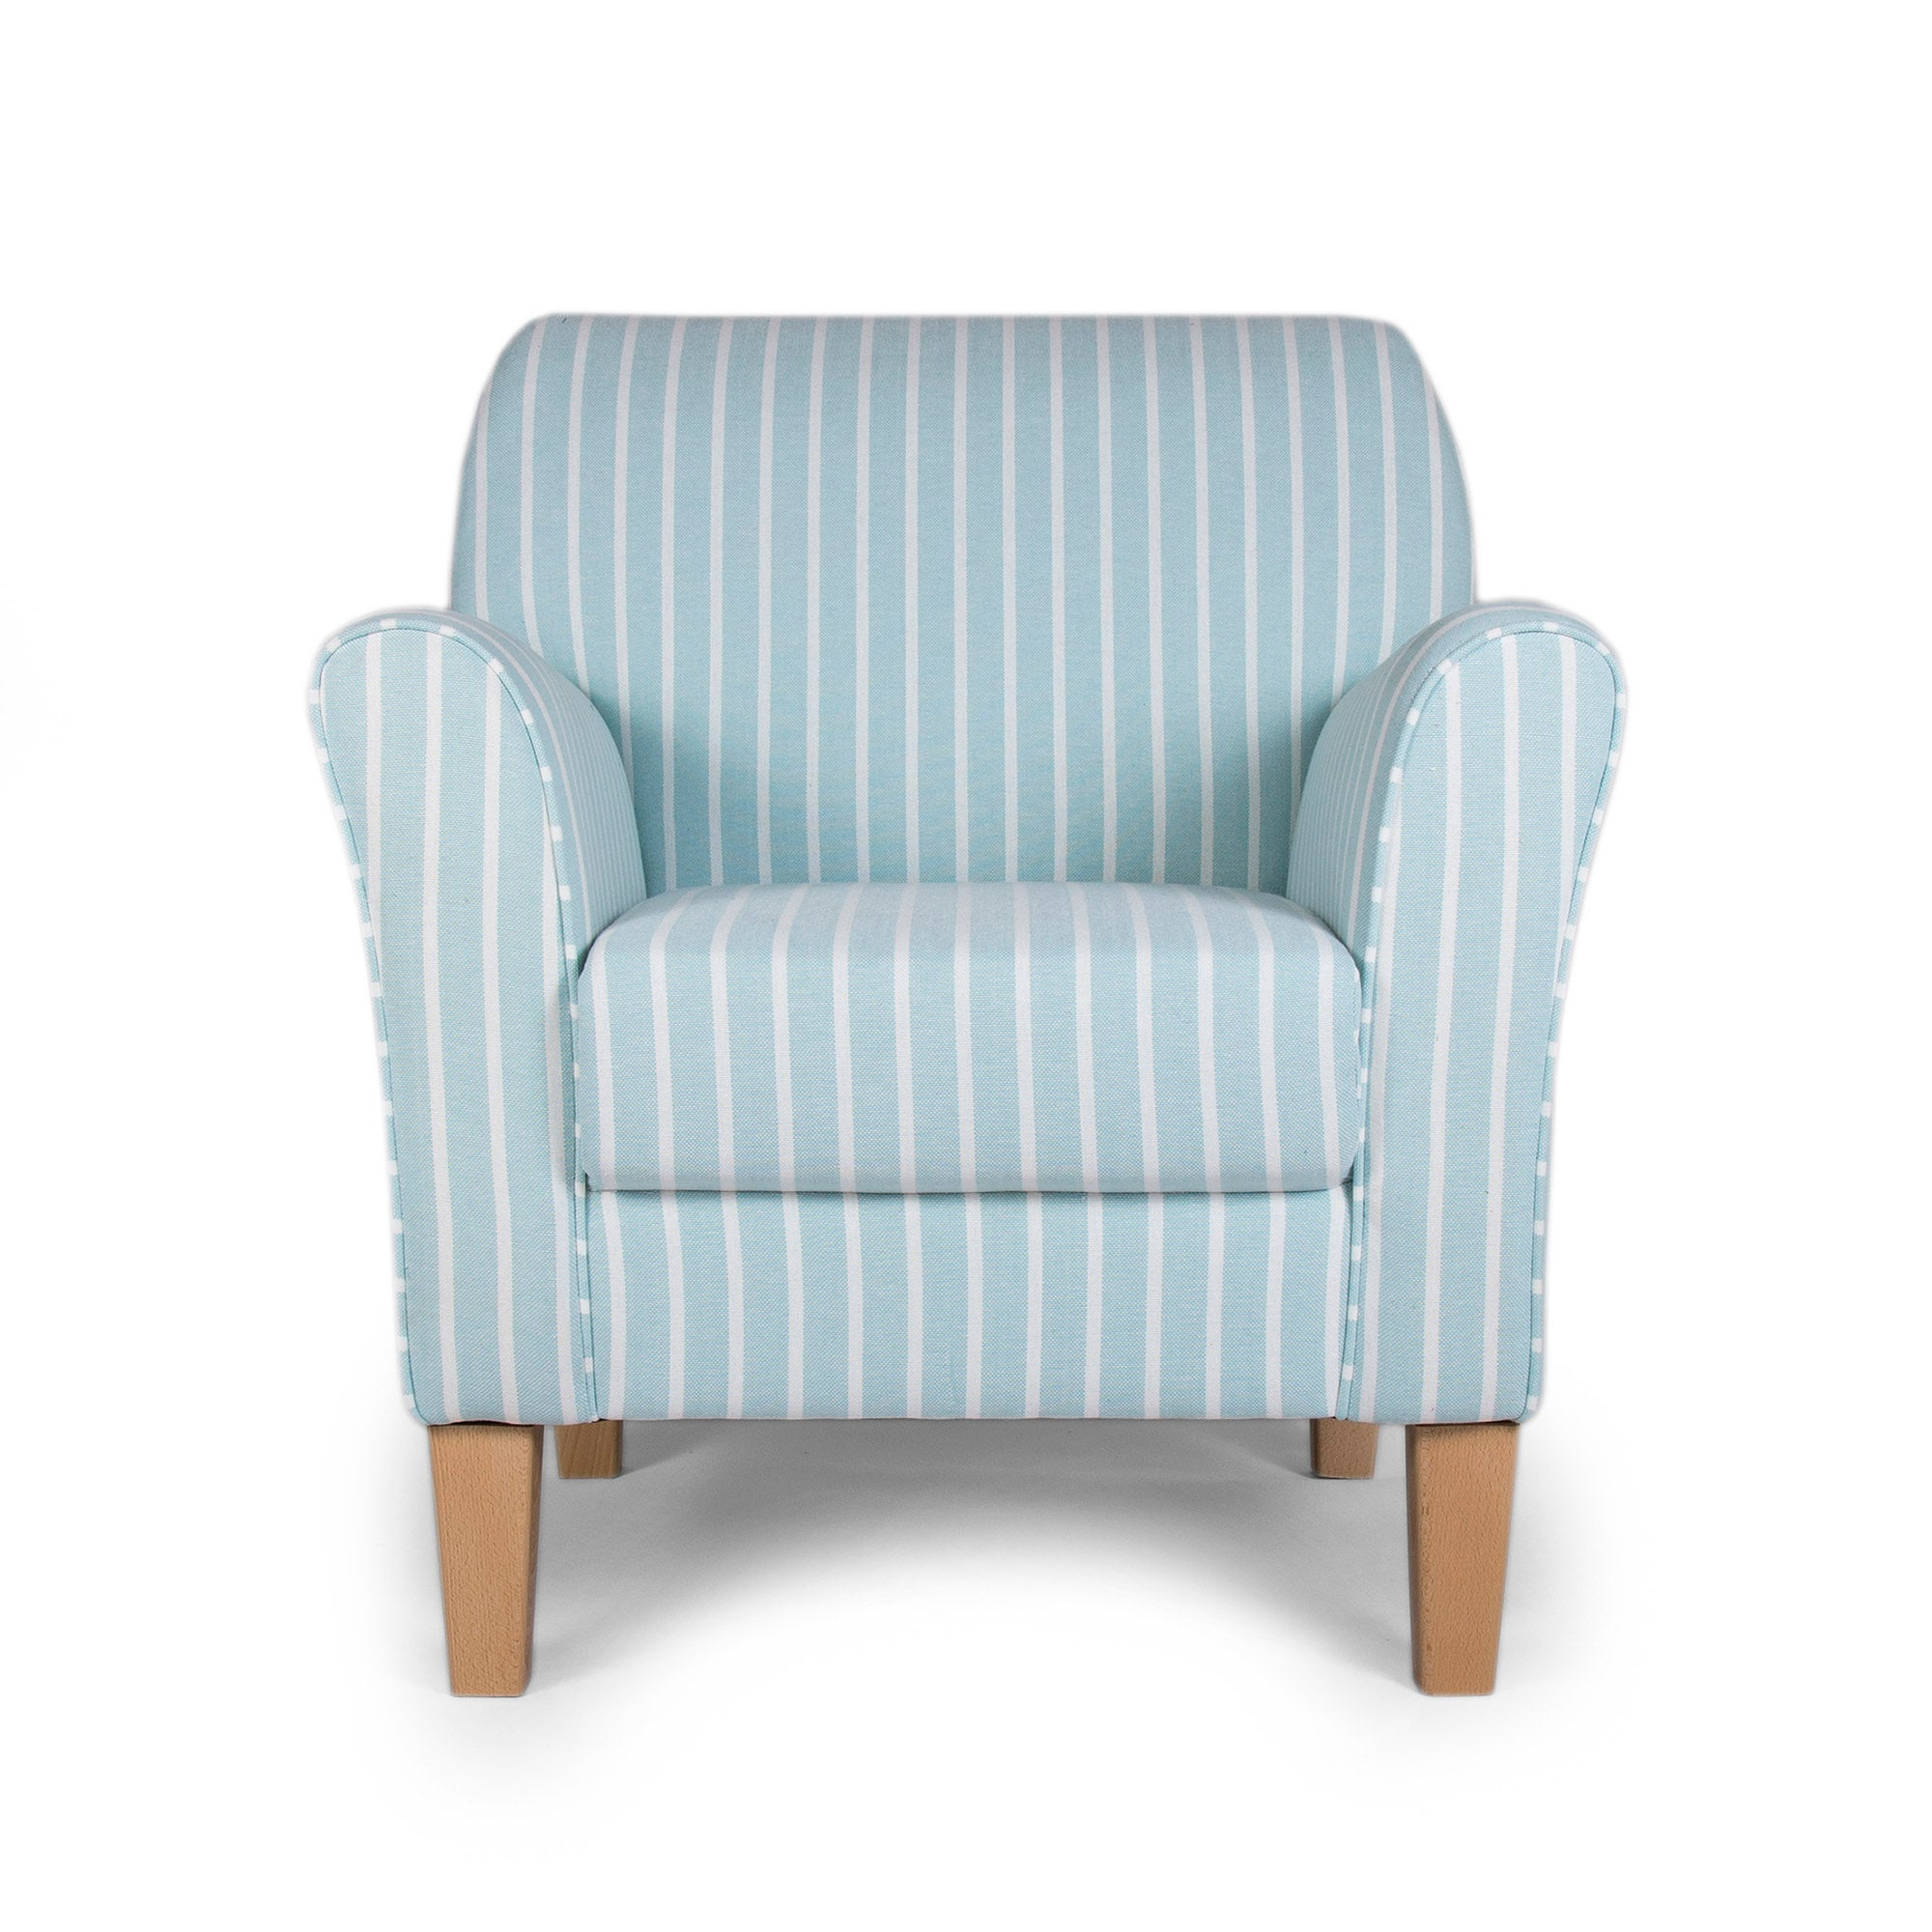 Photo of Hampton stripe duck egg lucielle armchair duck egg -blue-